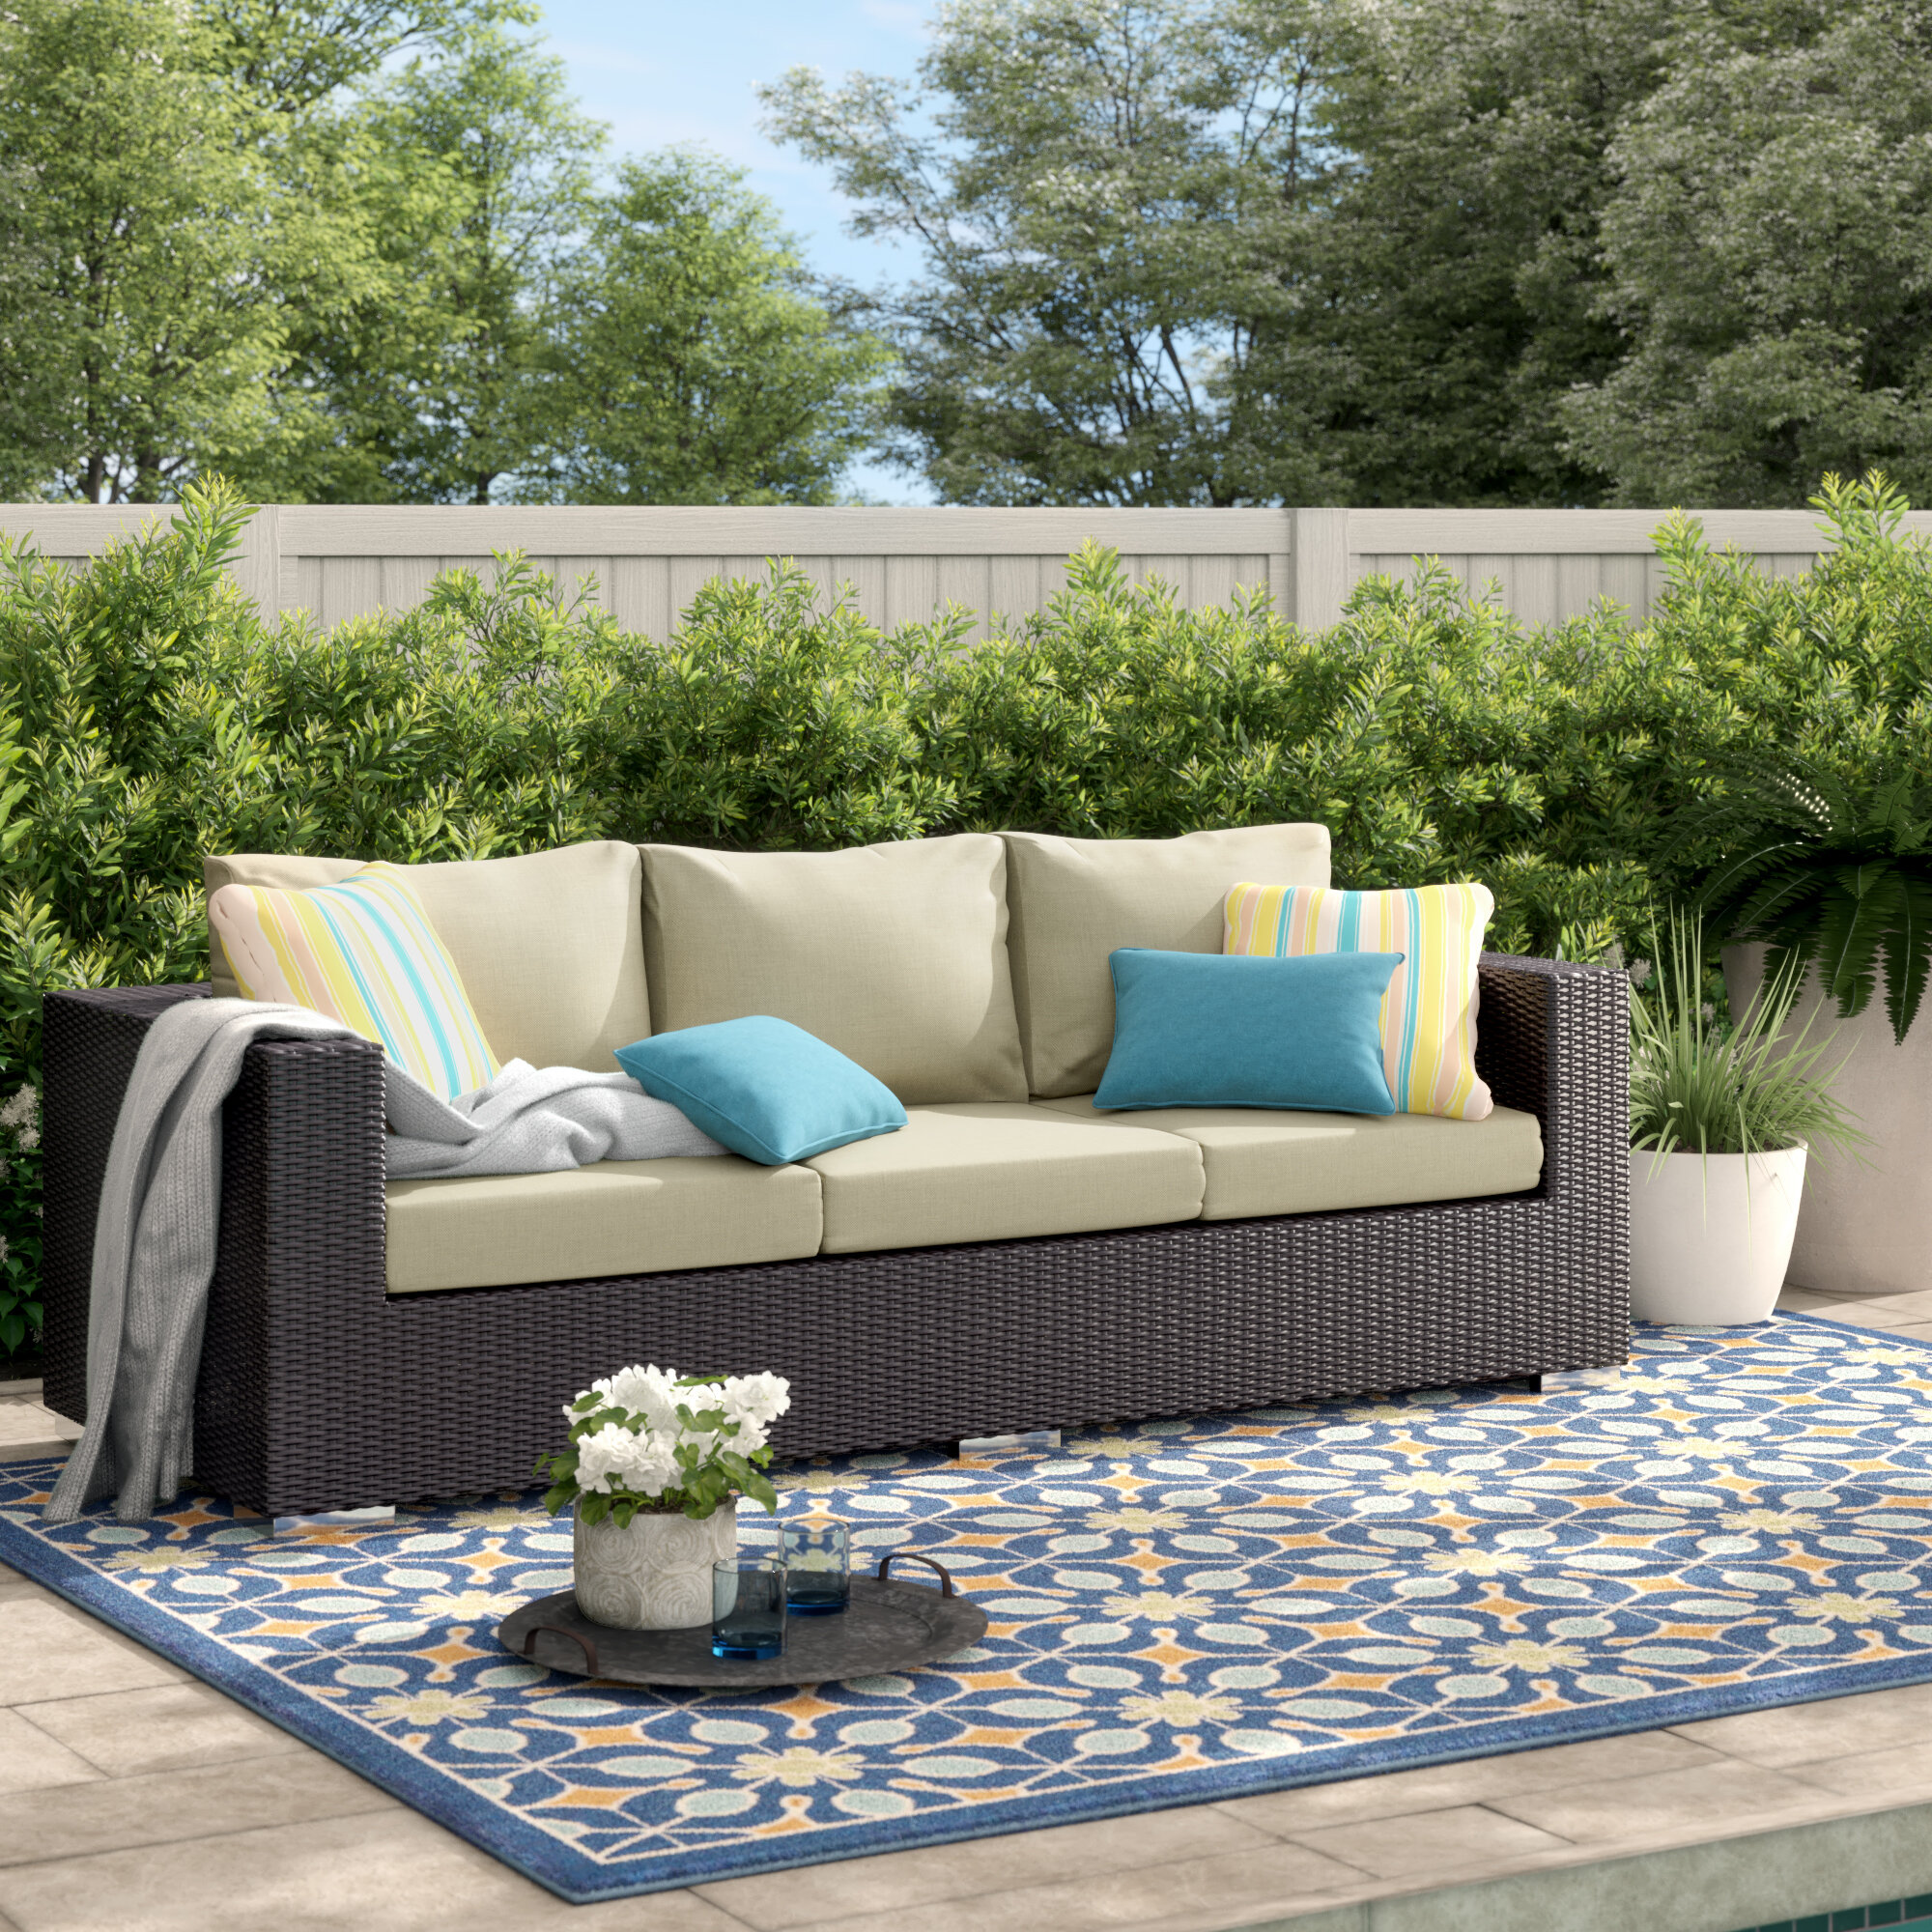 Wondrous Sol 72 Outdoor Brentwood Patio Sofa With Cushions Reviews Ncnpc Chair Design For Home Ncnpcorg